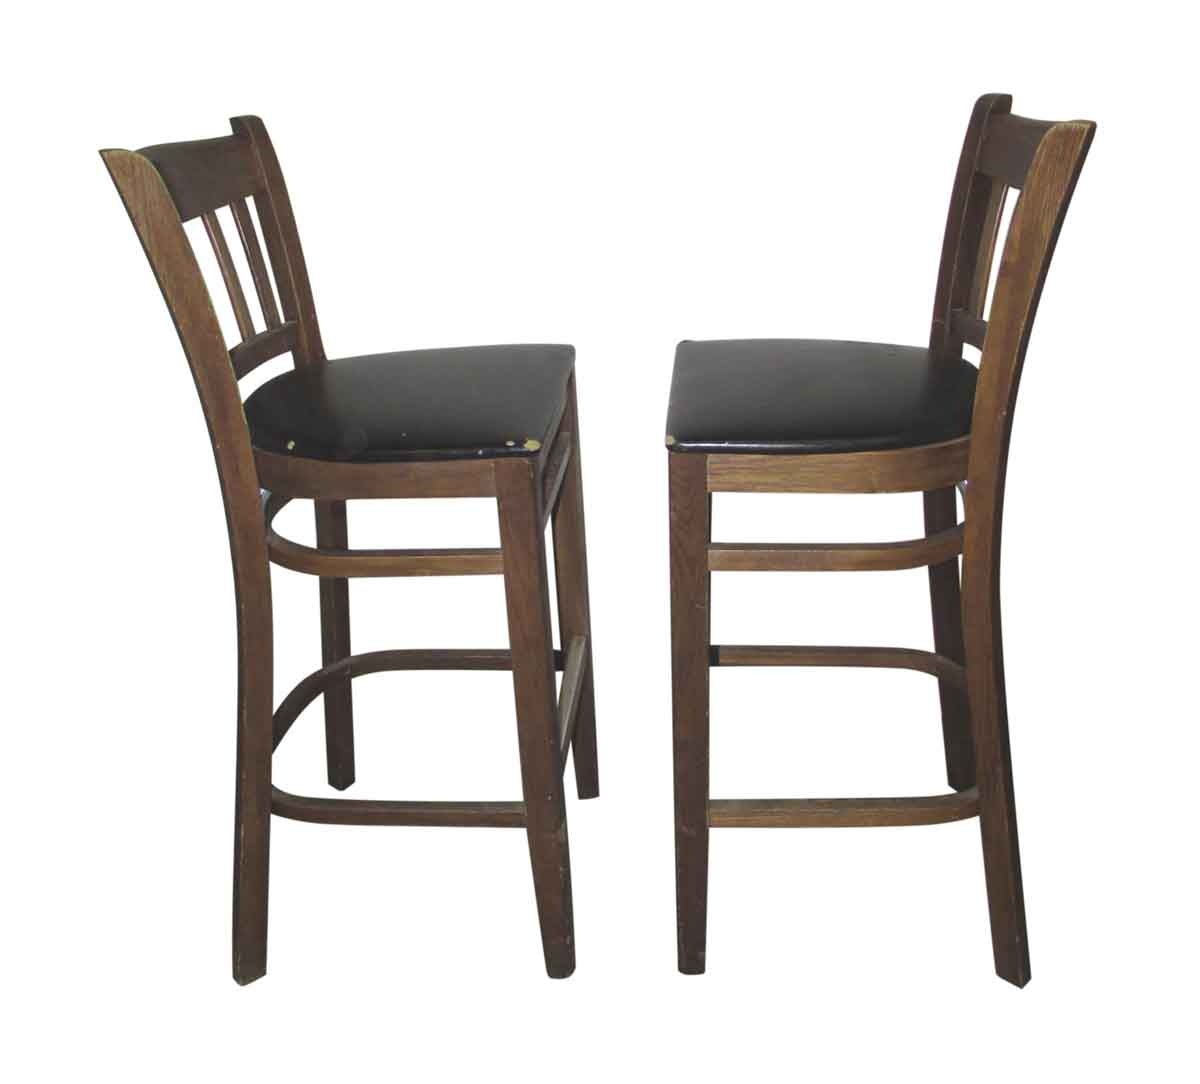 Wooden bar stools with slatted backs olde good things